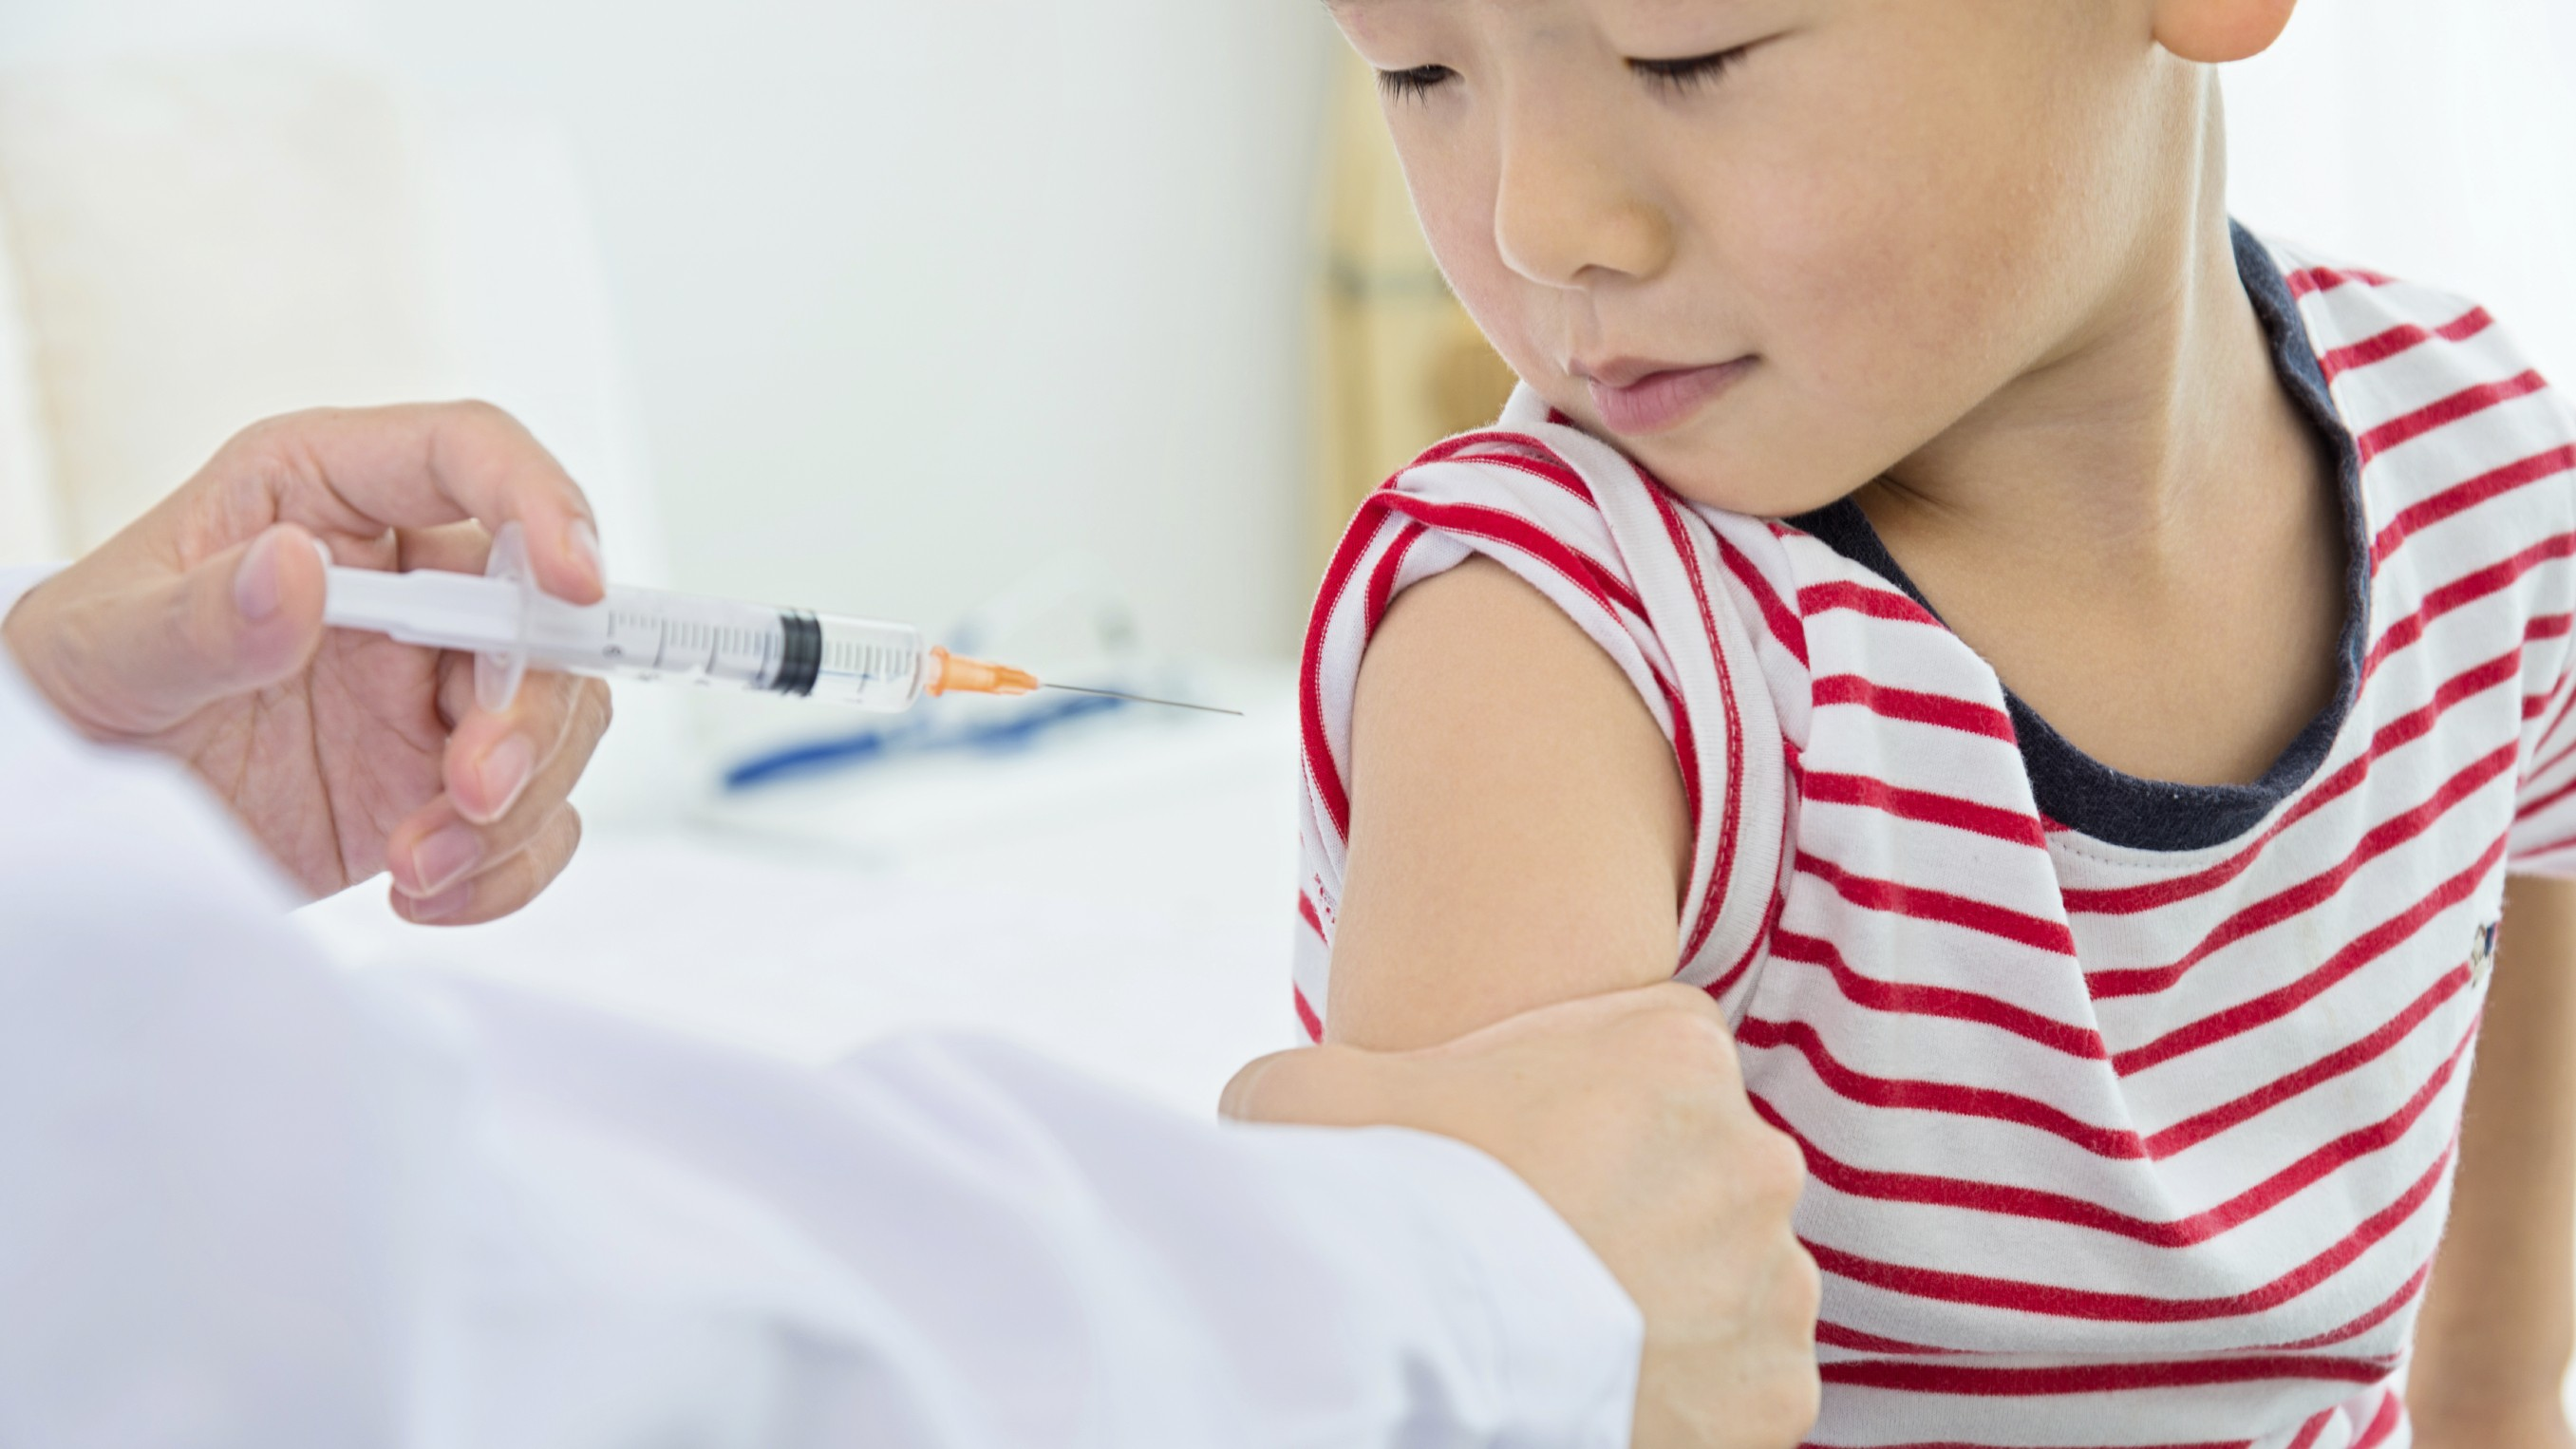 the vaccines for children essay He performed a study in 1998 that consisted of 12 children mmr vaccine and autism of a causal relationship etween thimerosal-containing vaccines and.